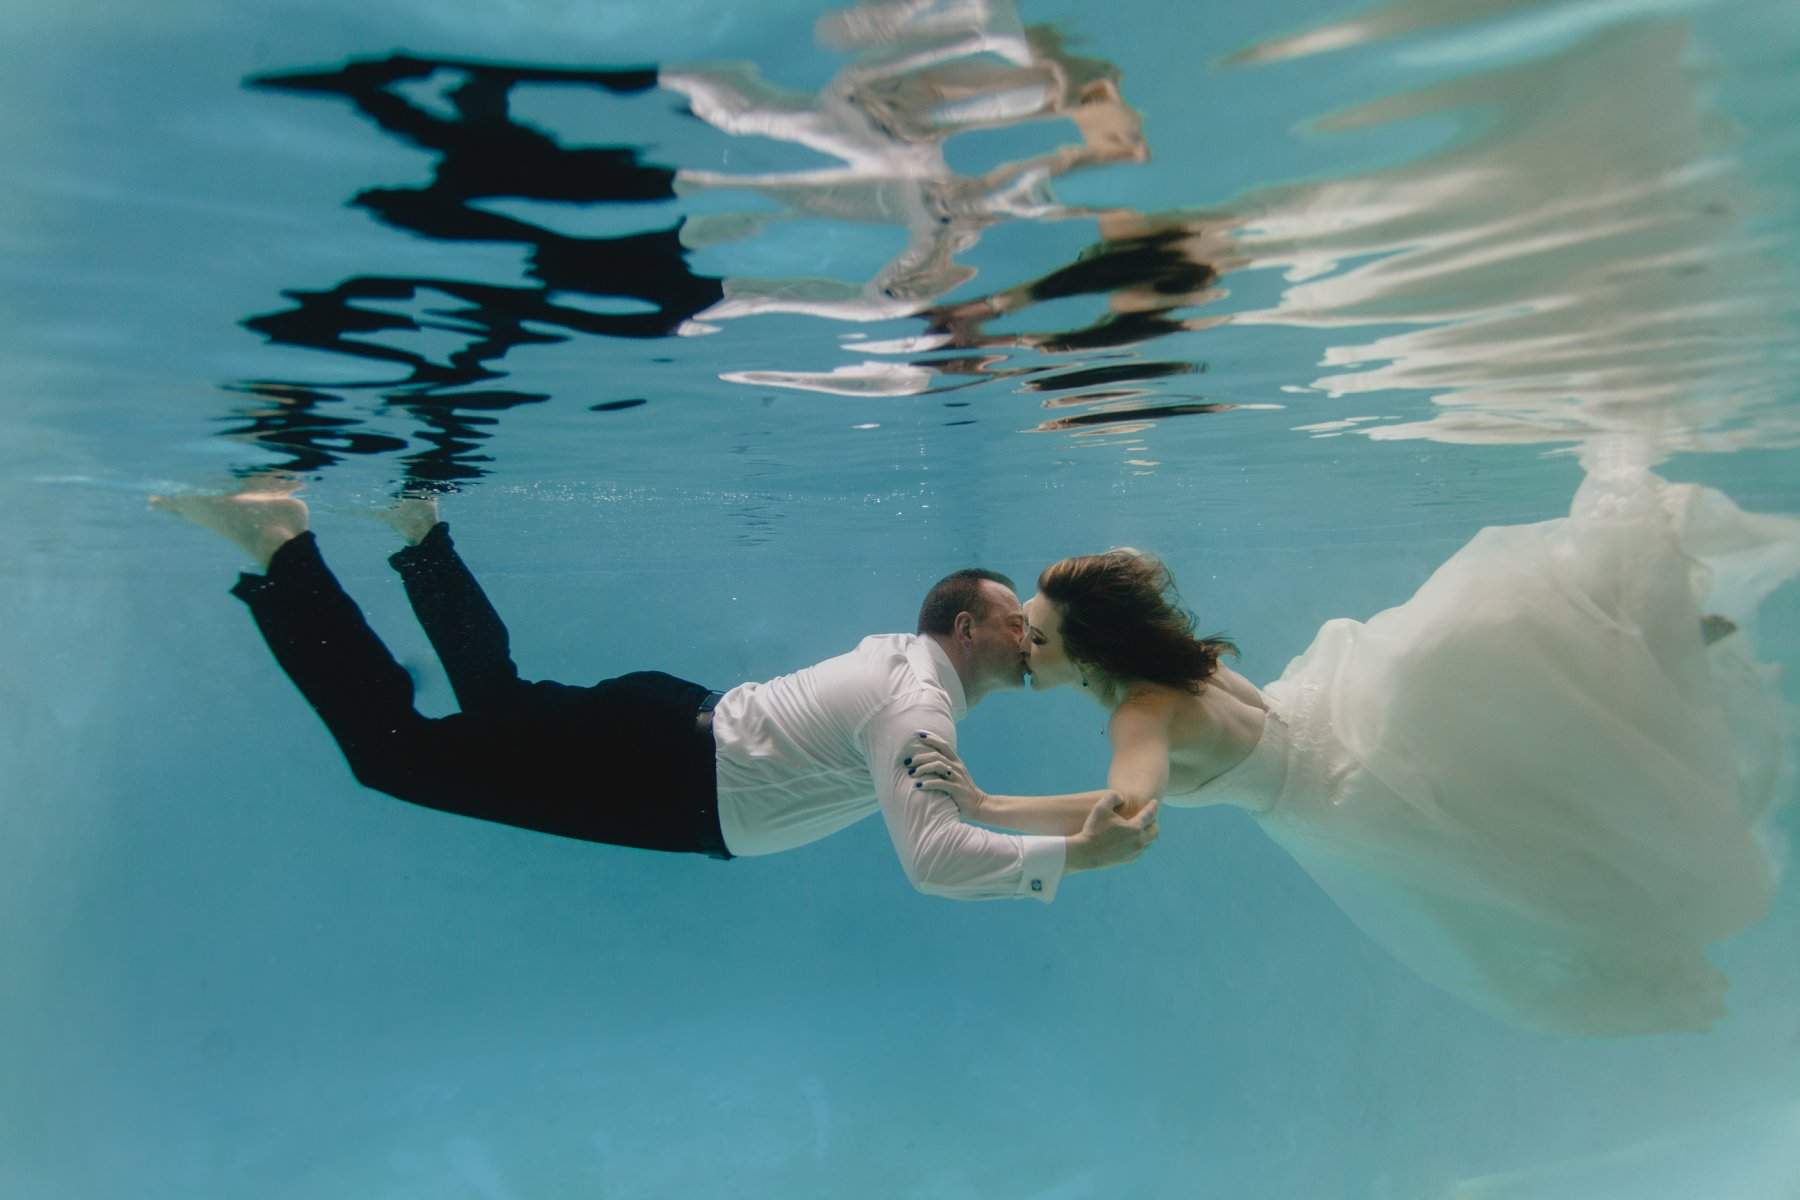 underwater wedding photos in a pool